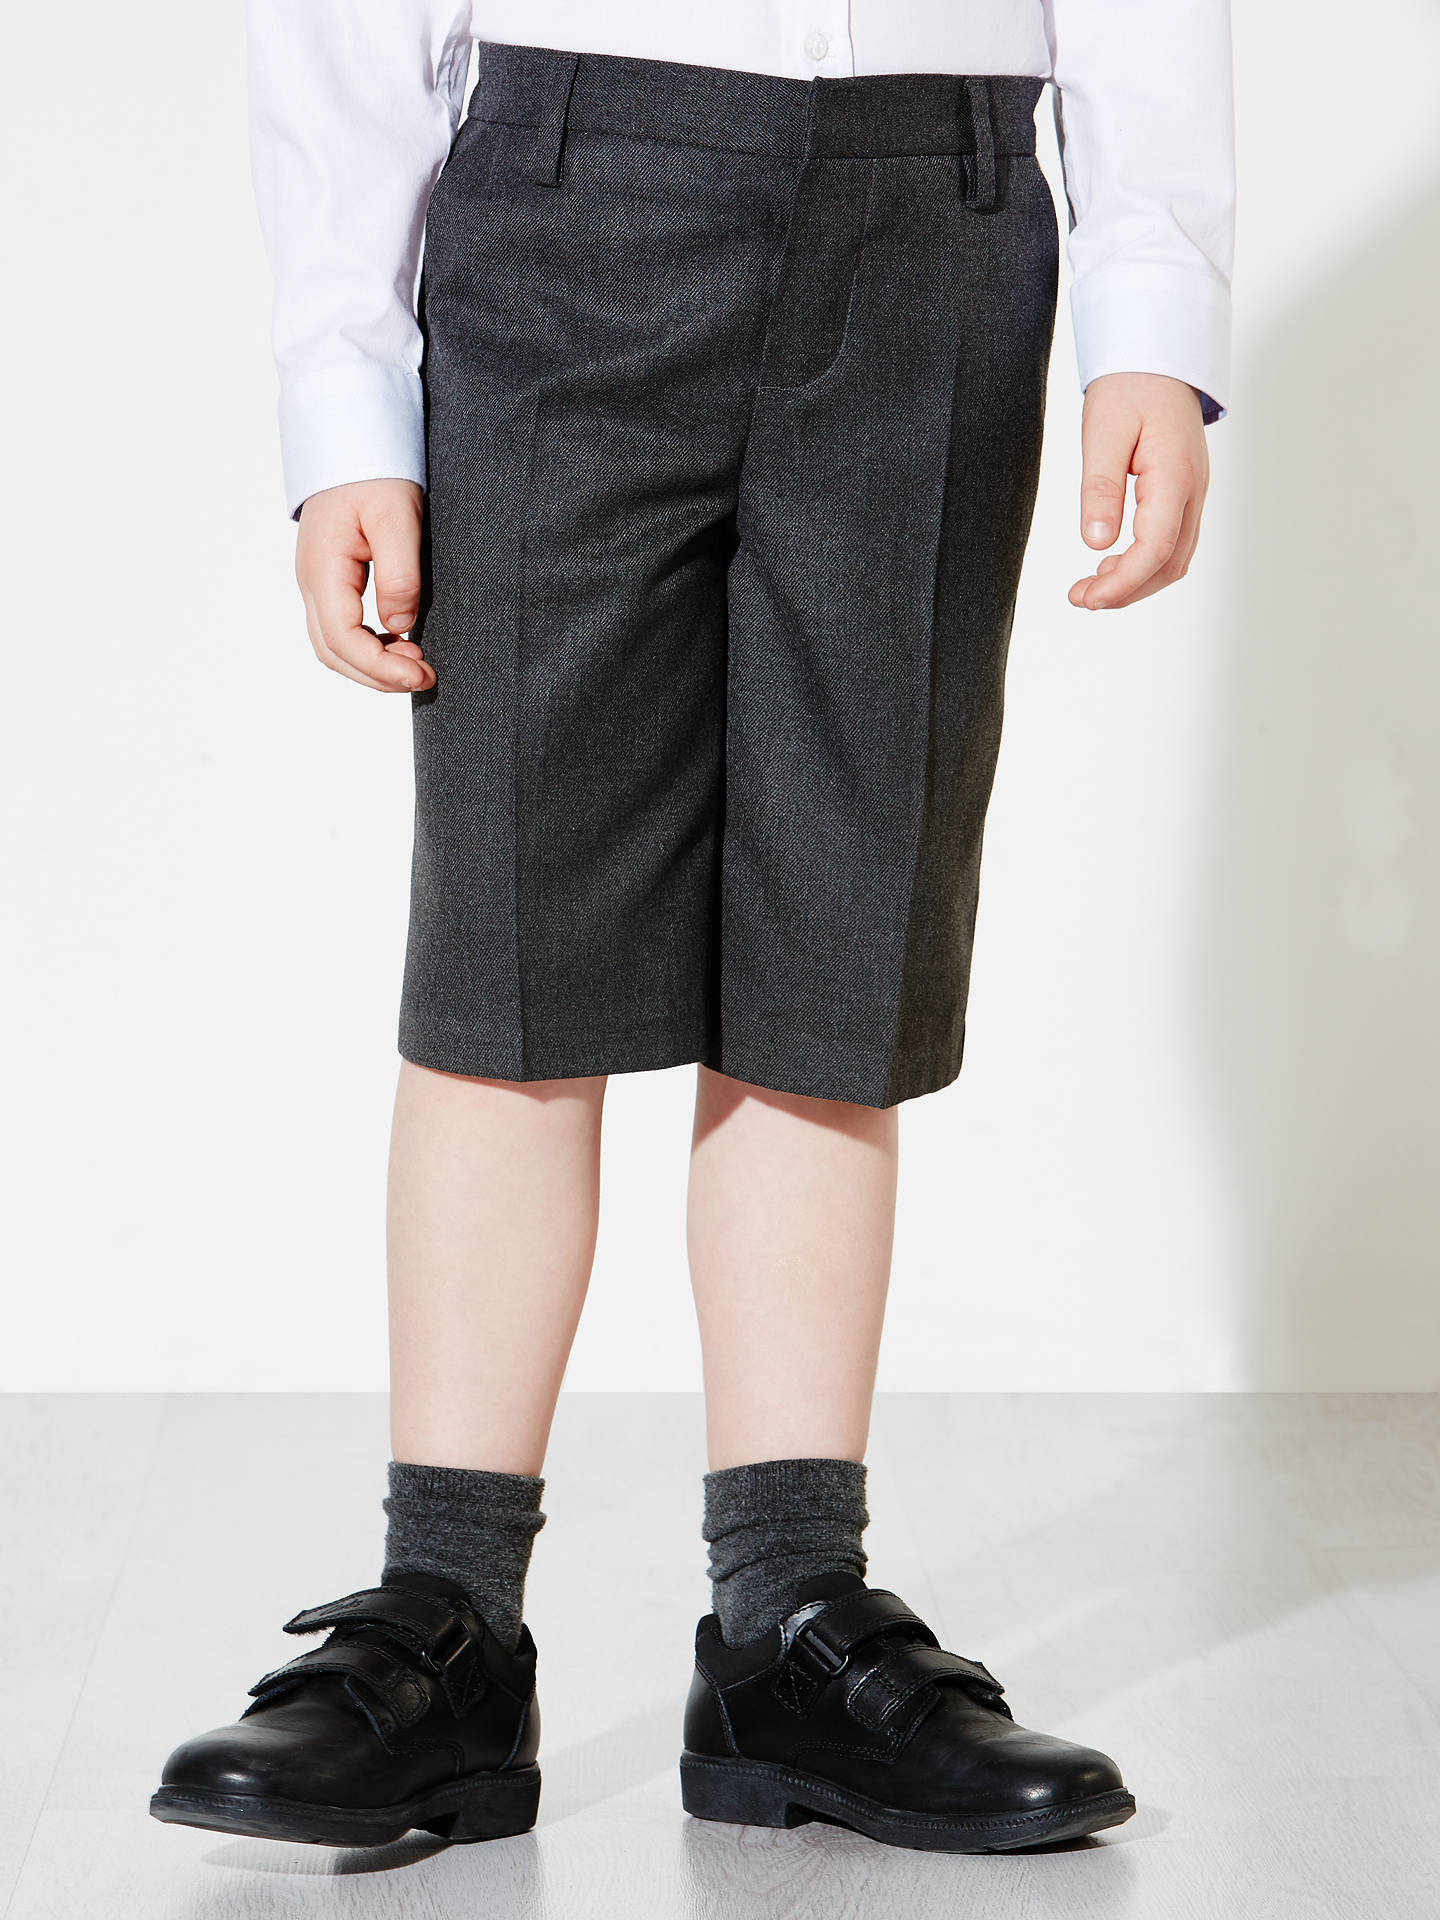 Buy John Lewis & Partners Boys' Bermuda Length School Shorts, Grey, 11 years Online at johnlewis.com